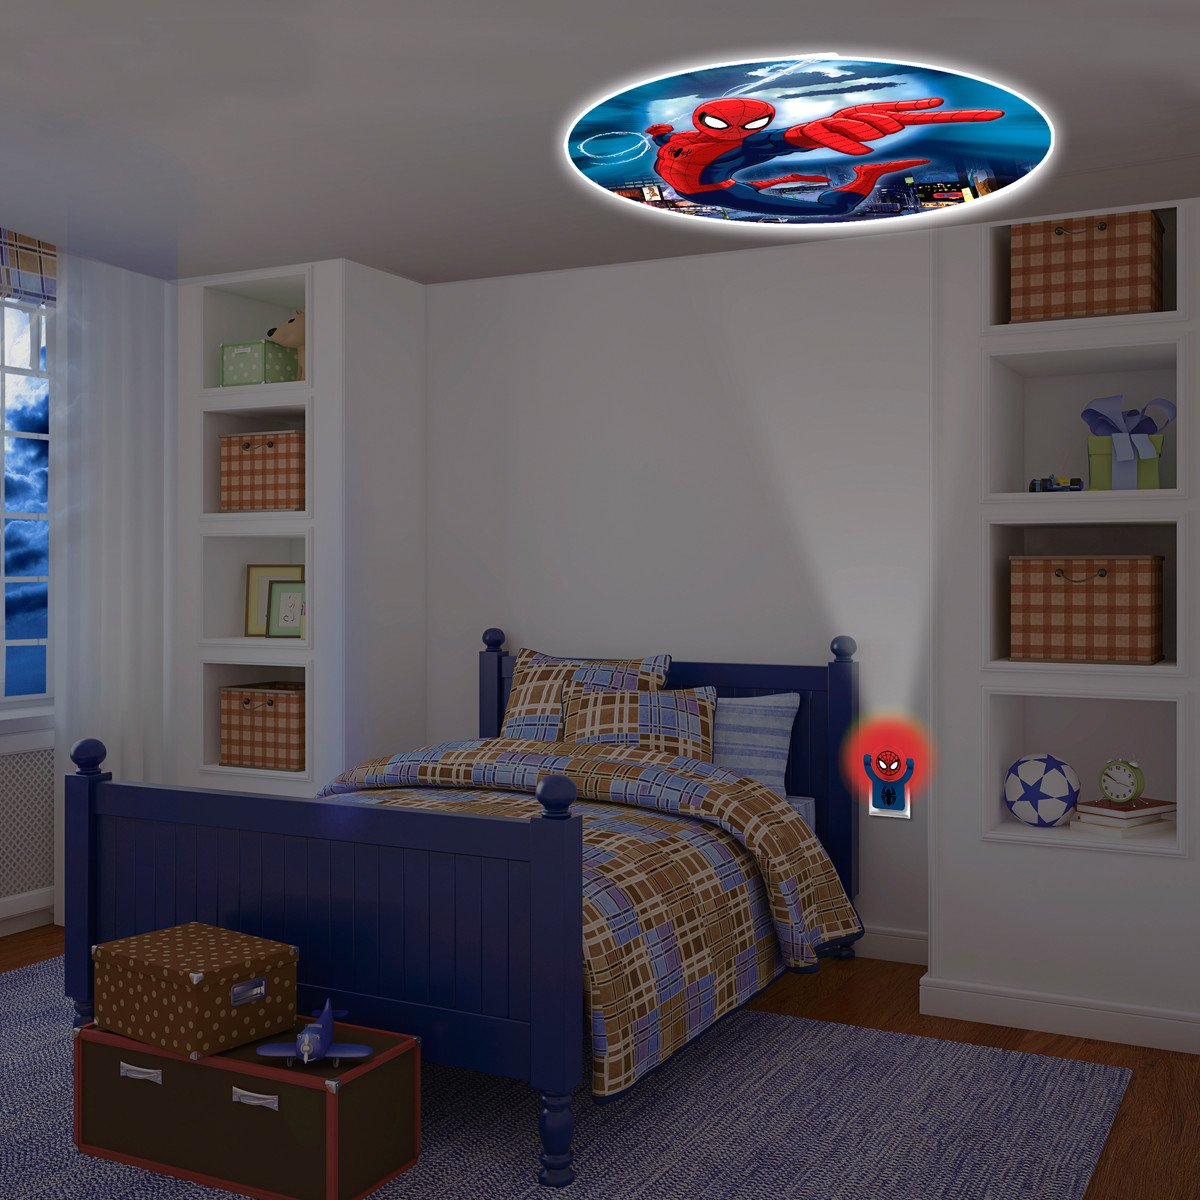 Marvelu0027s Ultimate Spider Man Projectables LED Plug In Night Light, 13341,  Image Projects Onto Wall Or Ceiling     Amazon.com